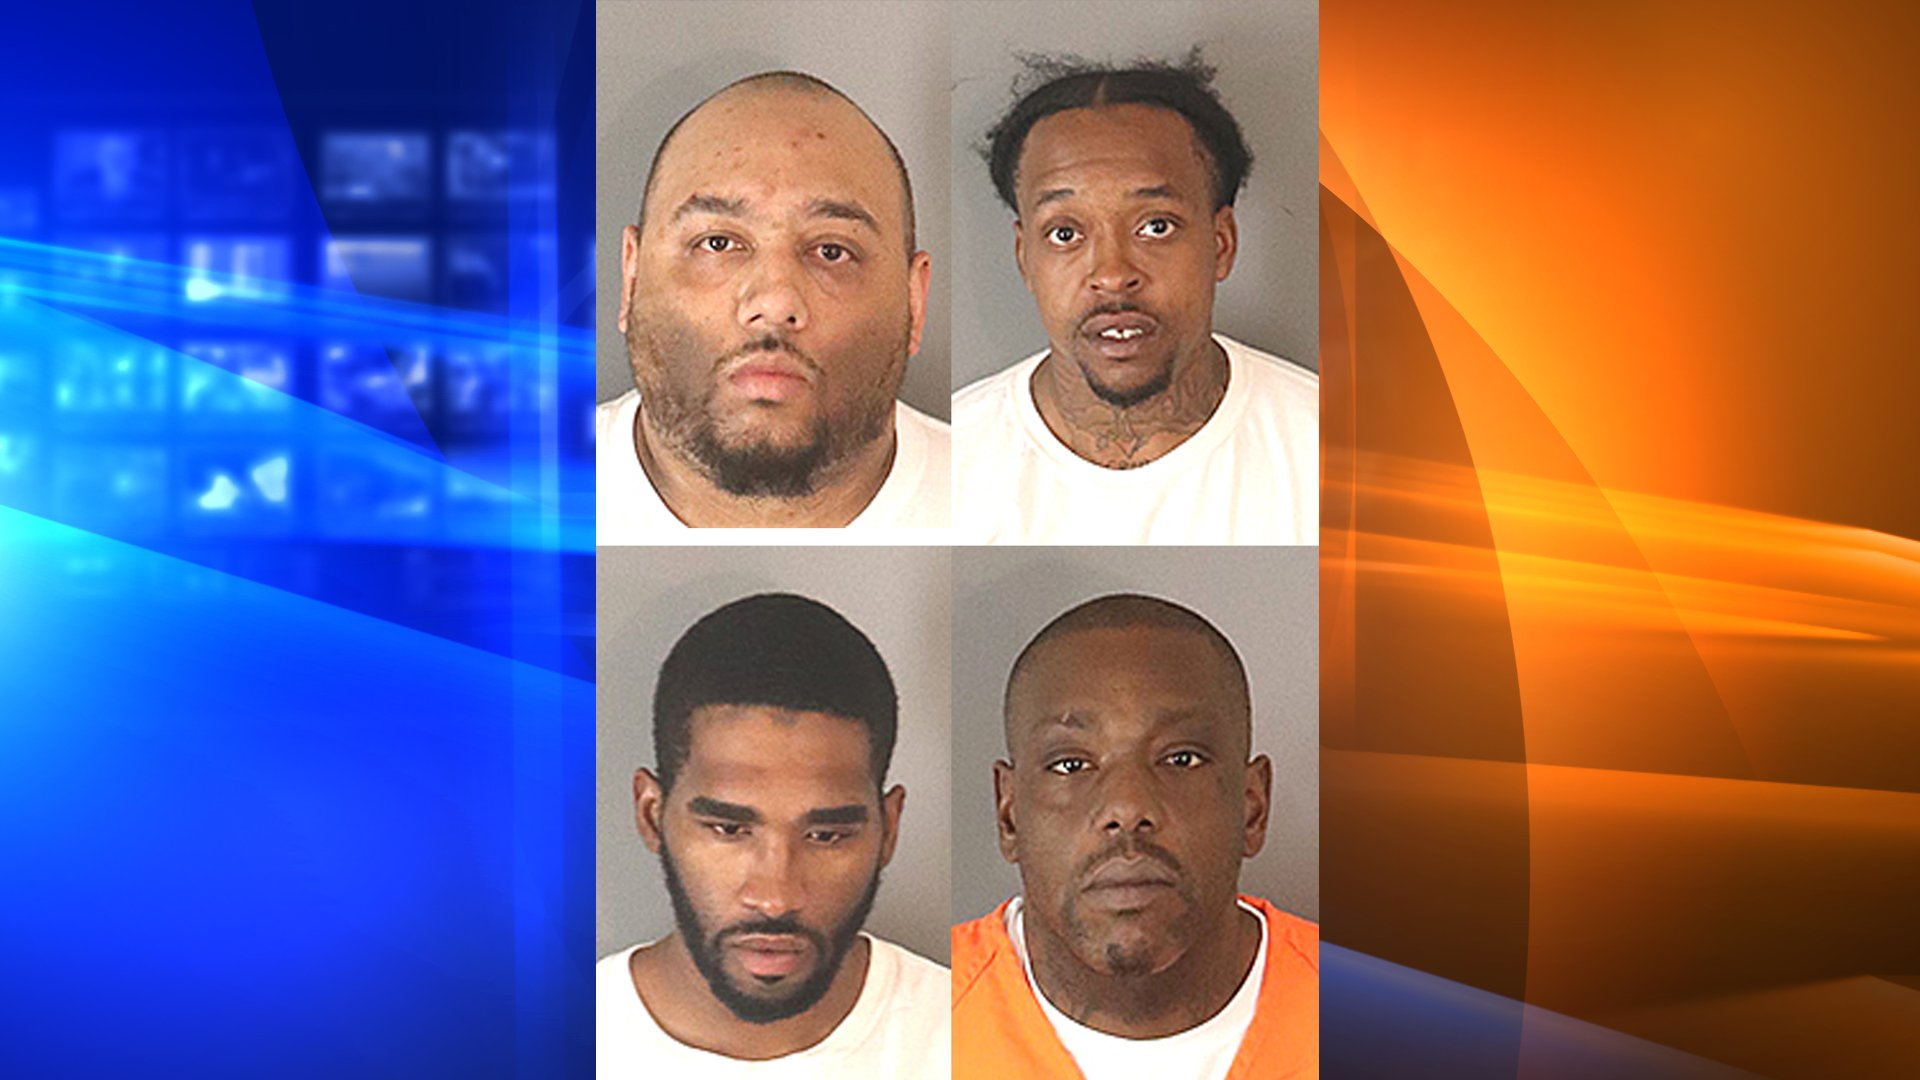 Andrew Cage (top left), Tyrale Holley (top right), Kevin Washington (bottom left) and Maurice Whitley (bottom left) were arrested in connection to a violent armed robbery in Jurupa Valley. (Credit: Riverside County Sheriff's Department)